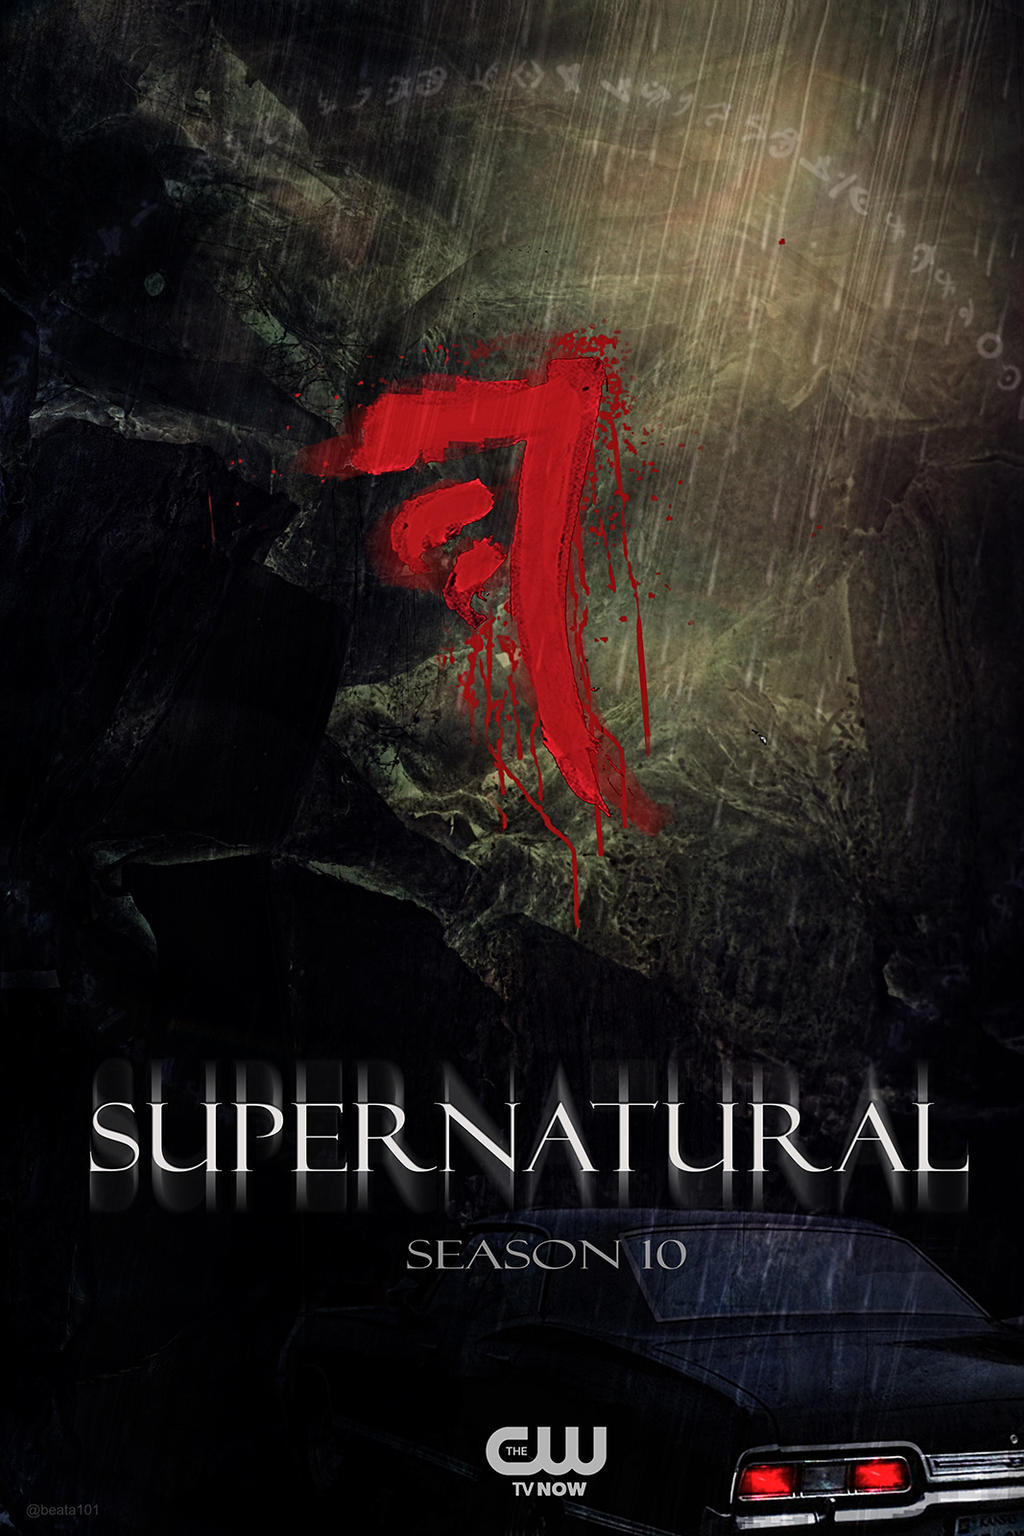 Impala Supernatural Season 10 Fan Made Poster by beata101 ...